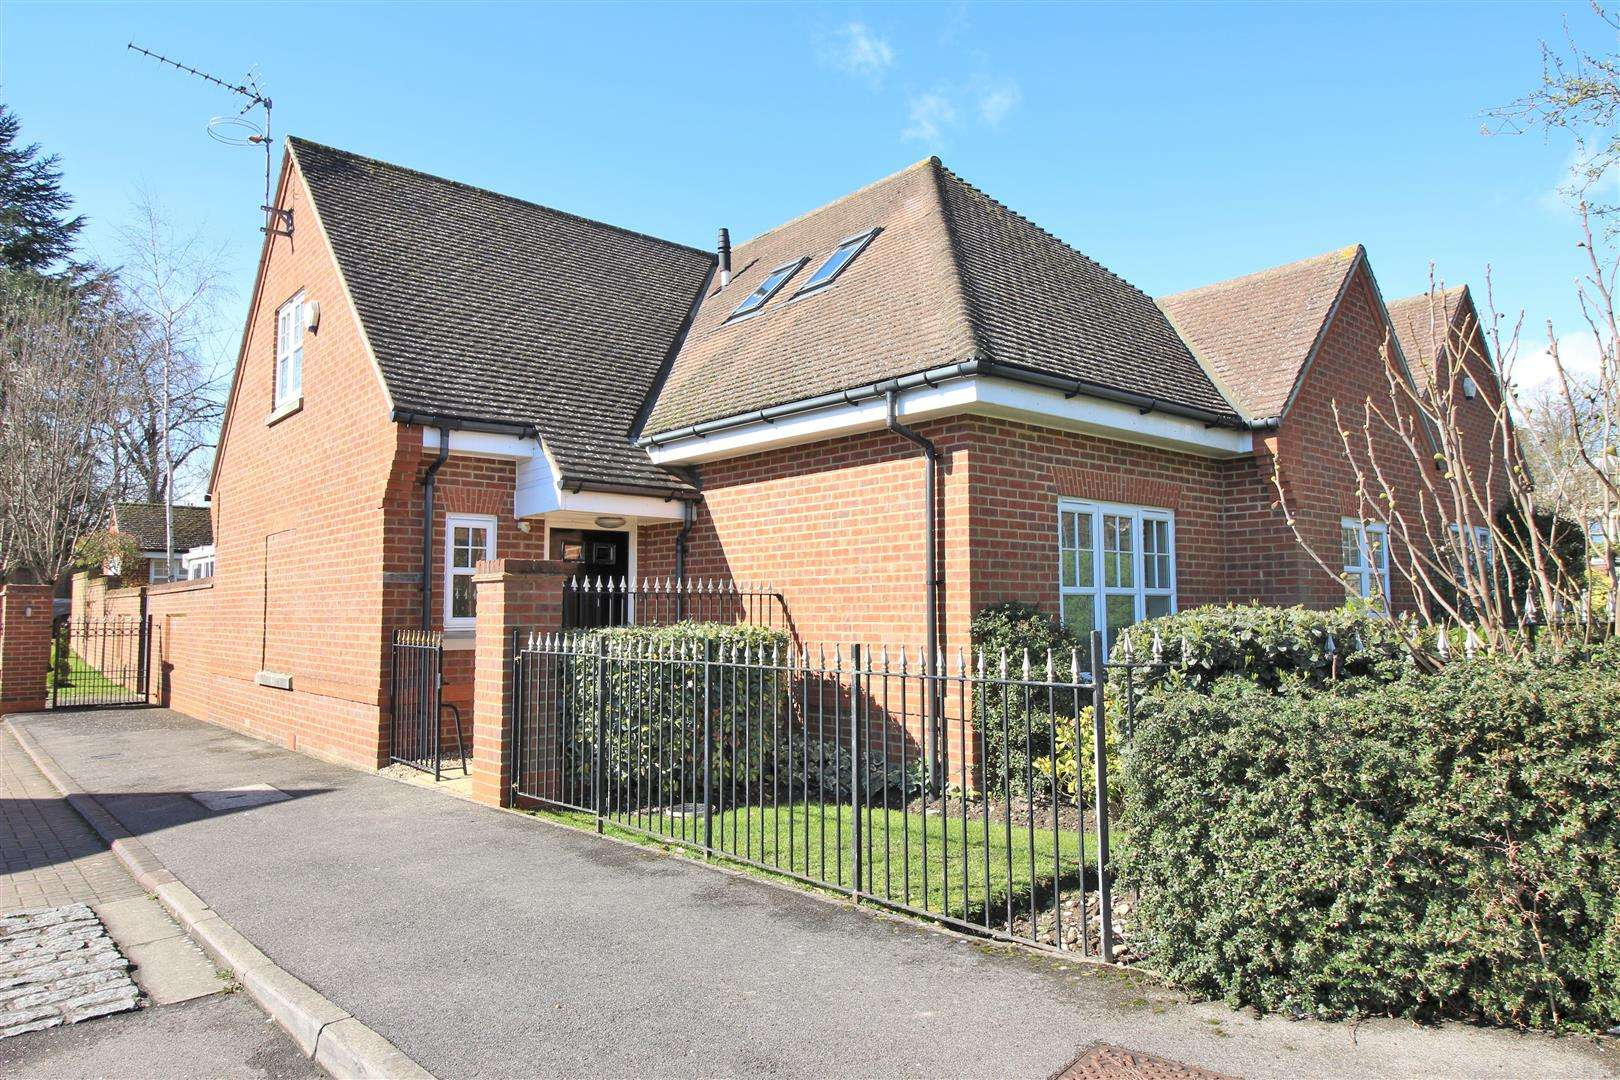 4 bed to rent in Bushey Heath - Property Image 1